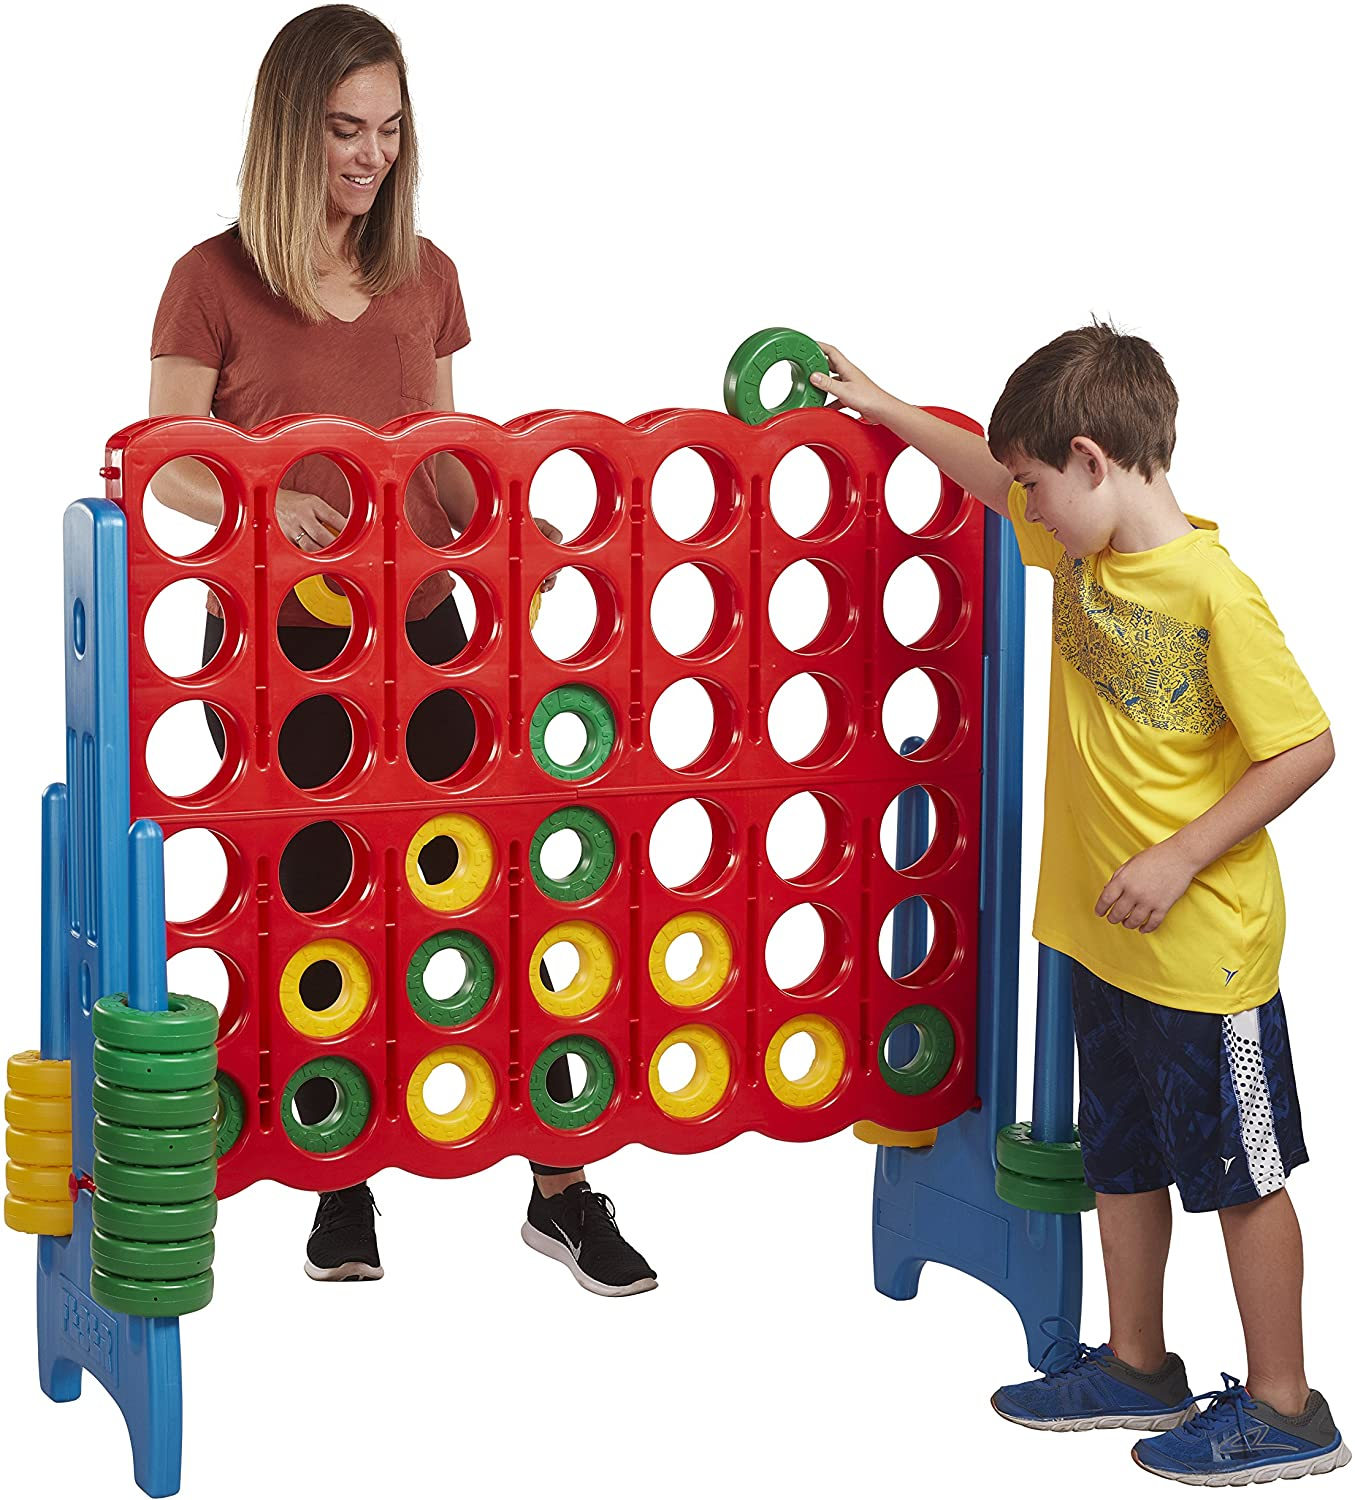 ECR4Kids Jumbo 4-to-Score Giant Game Set, Backyard Games for Kids, Jumbo Connect-All-4 Game Set, Indoor or Outdoor Game, Adult and Family Fun Game, Easy to Transport, 4 Feet Tall, Primary Colors